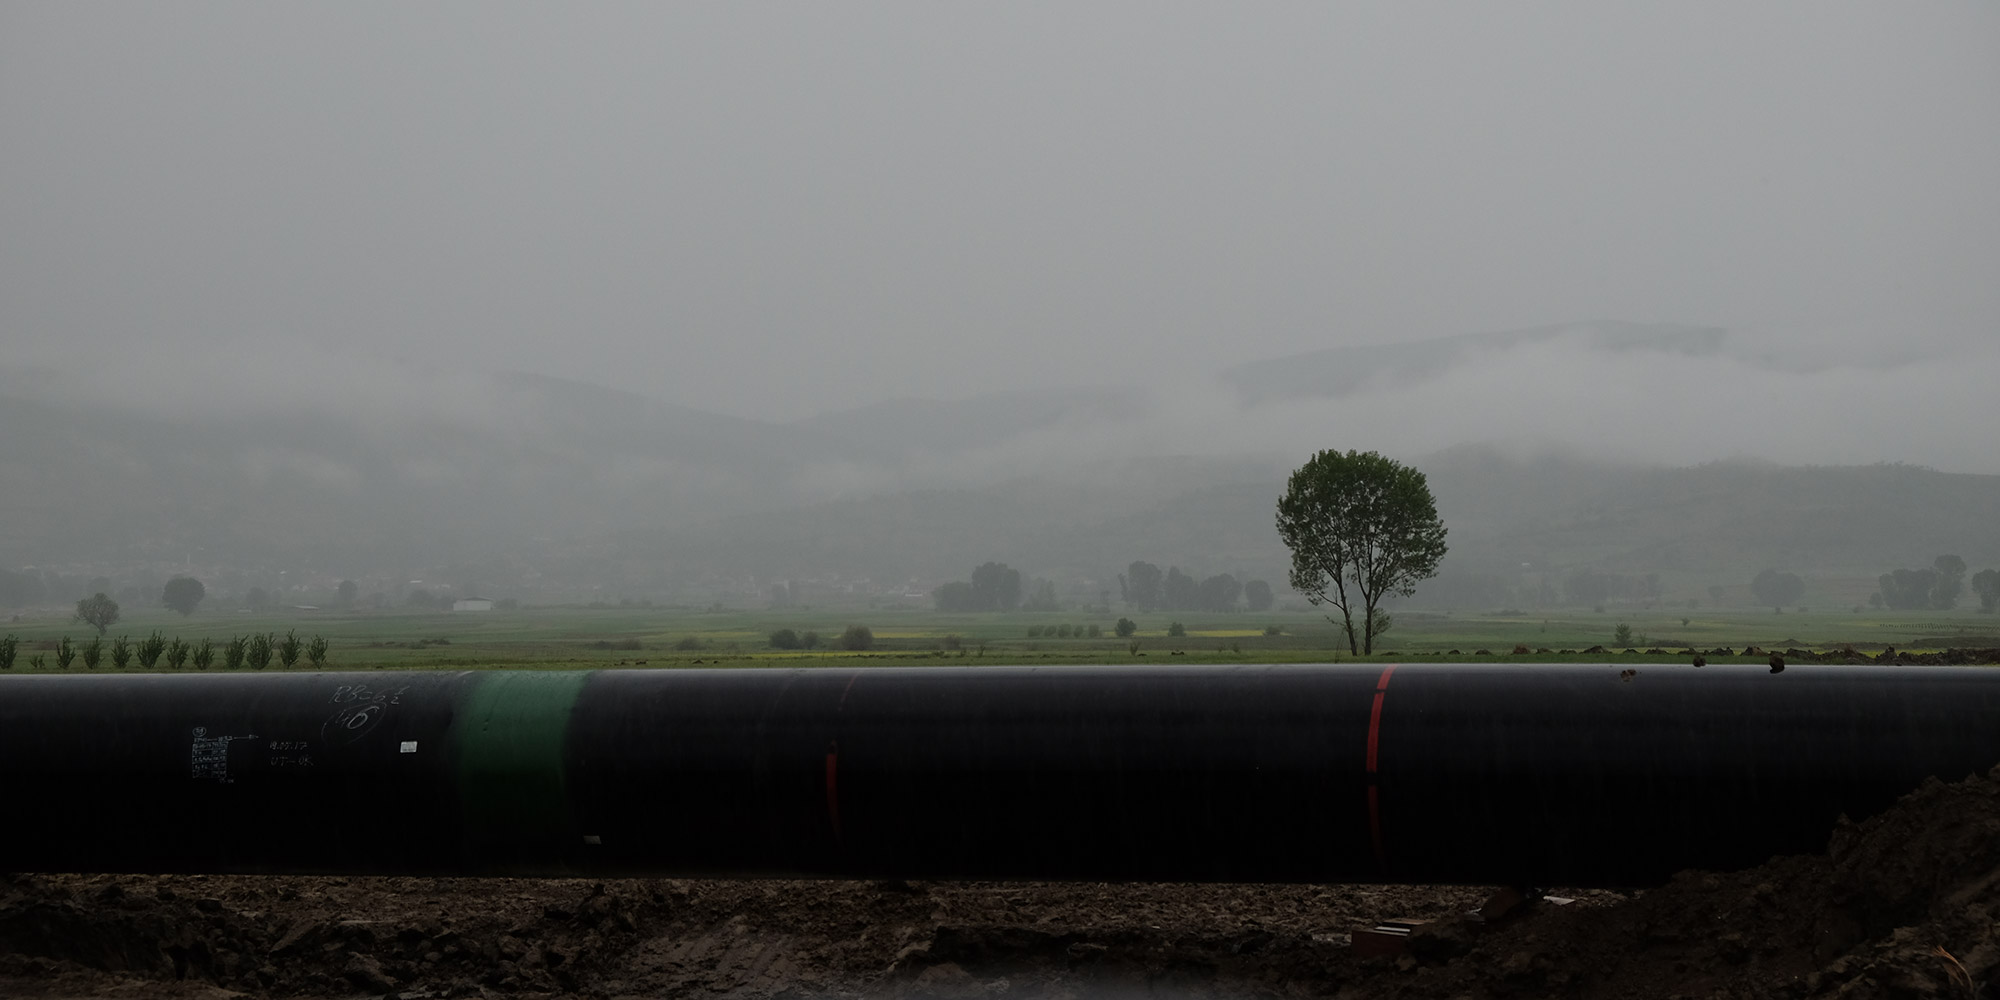 A black pipe in front of a foggy panorama.